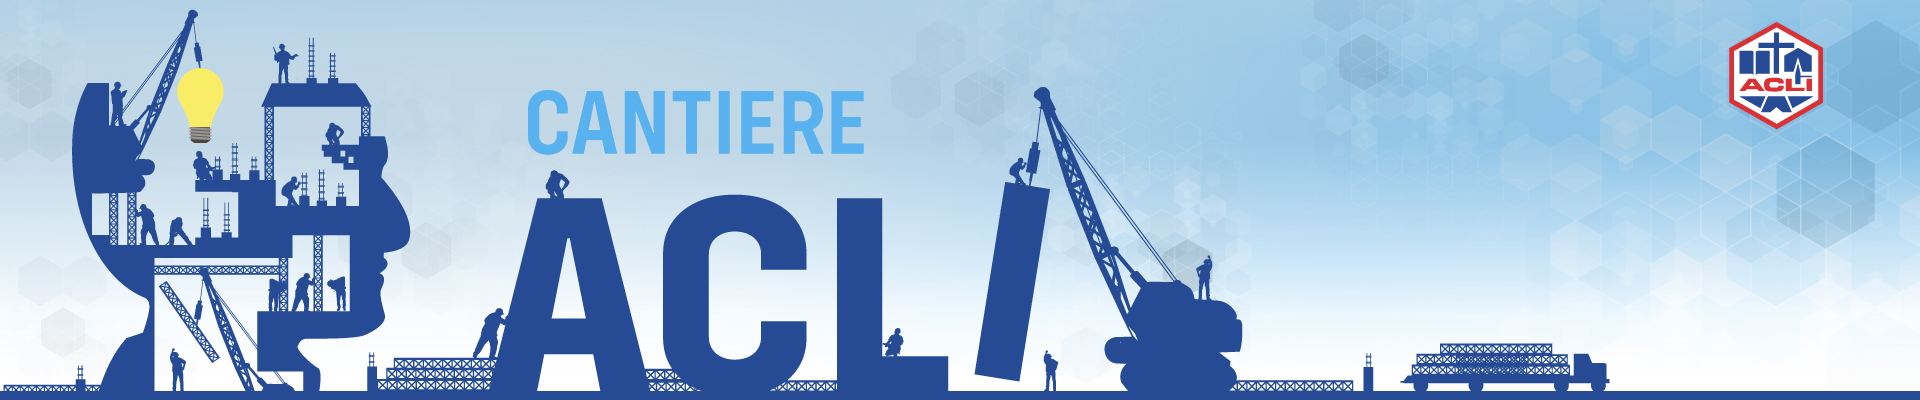 cantiere-acli